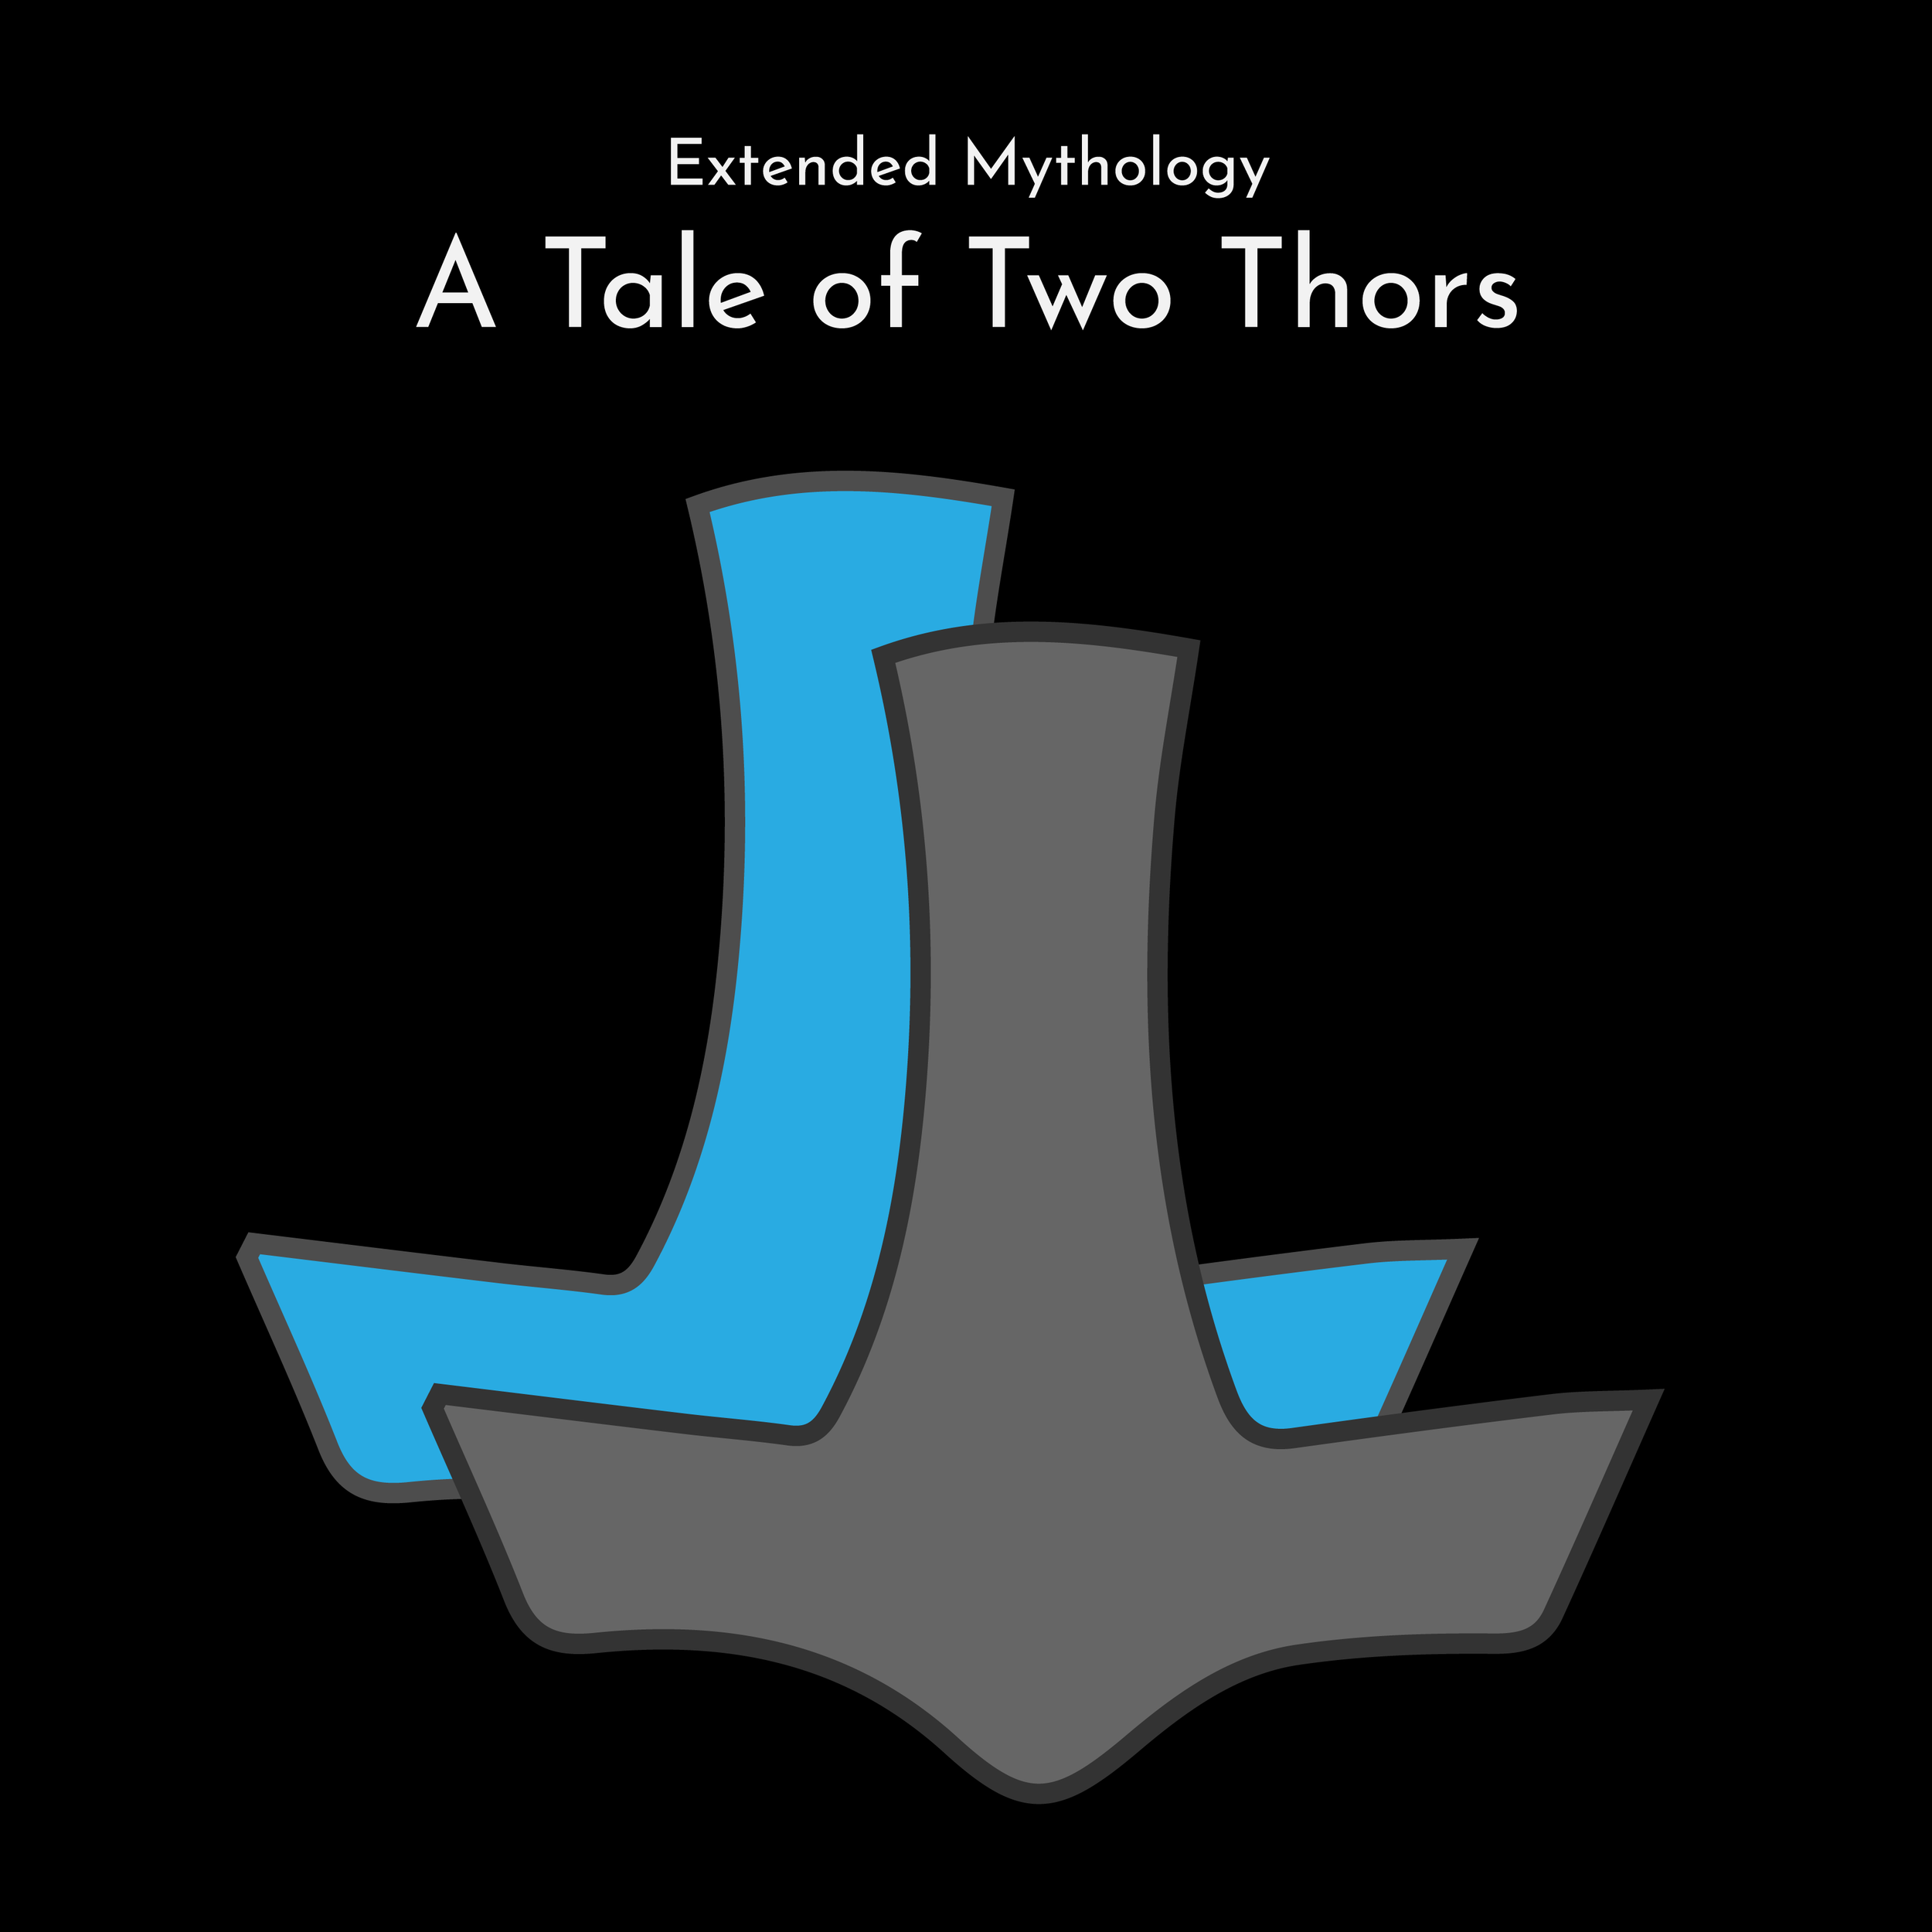 TwoThors-01.png